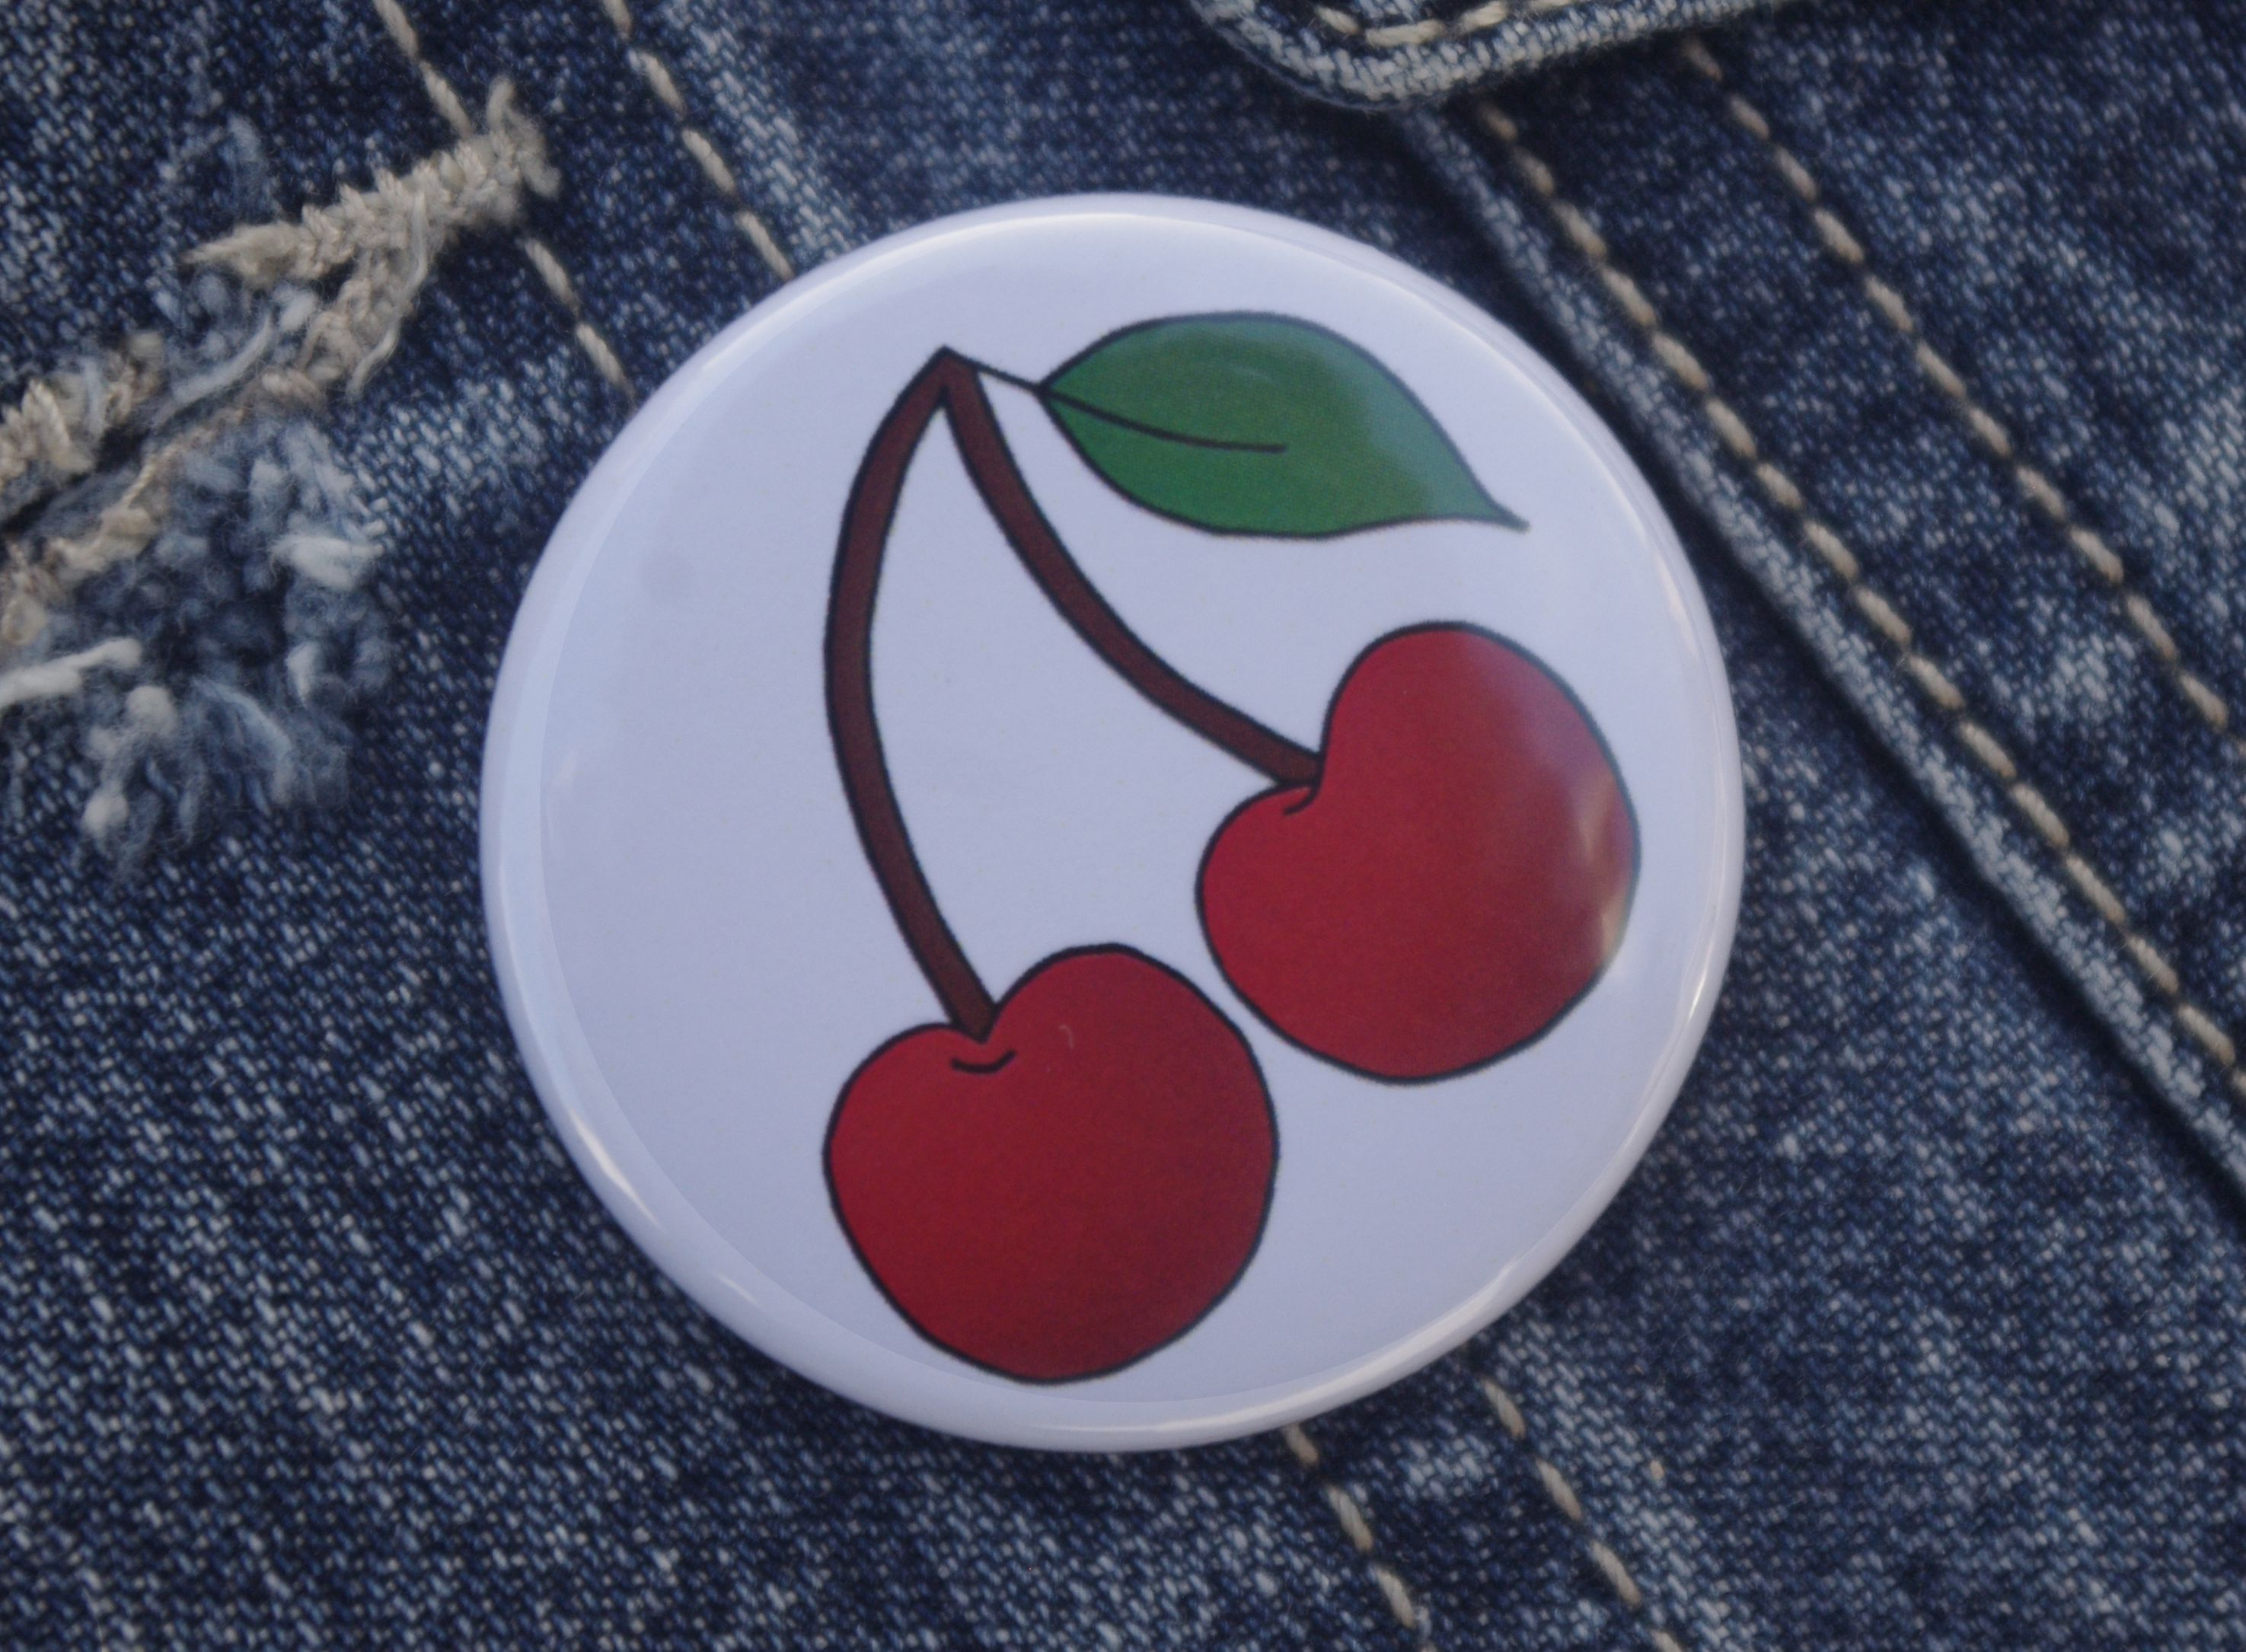 rockabilly accessories gift cherries pin stockingfiller cherry pinbadge badge tattoo clothing